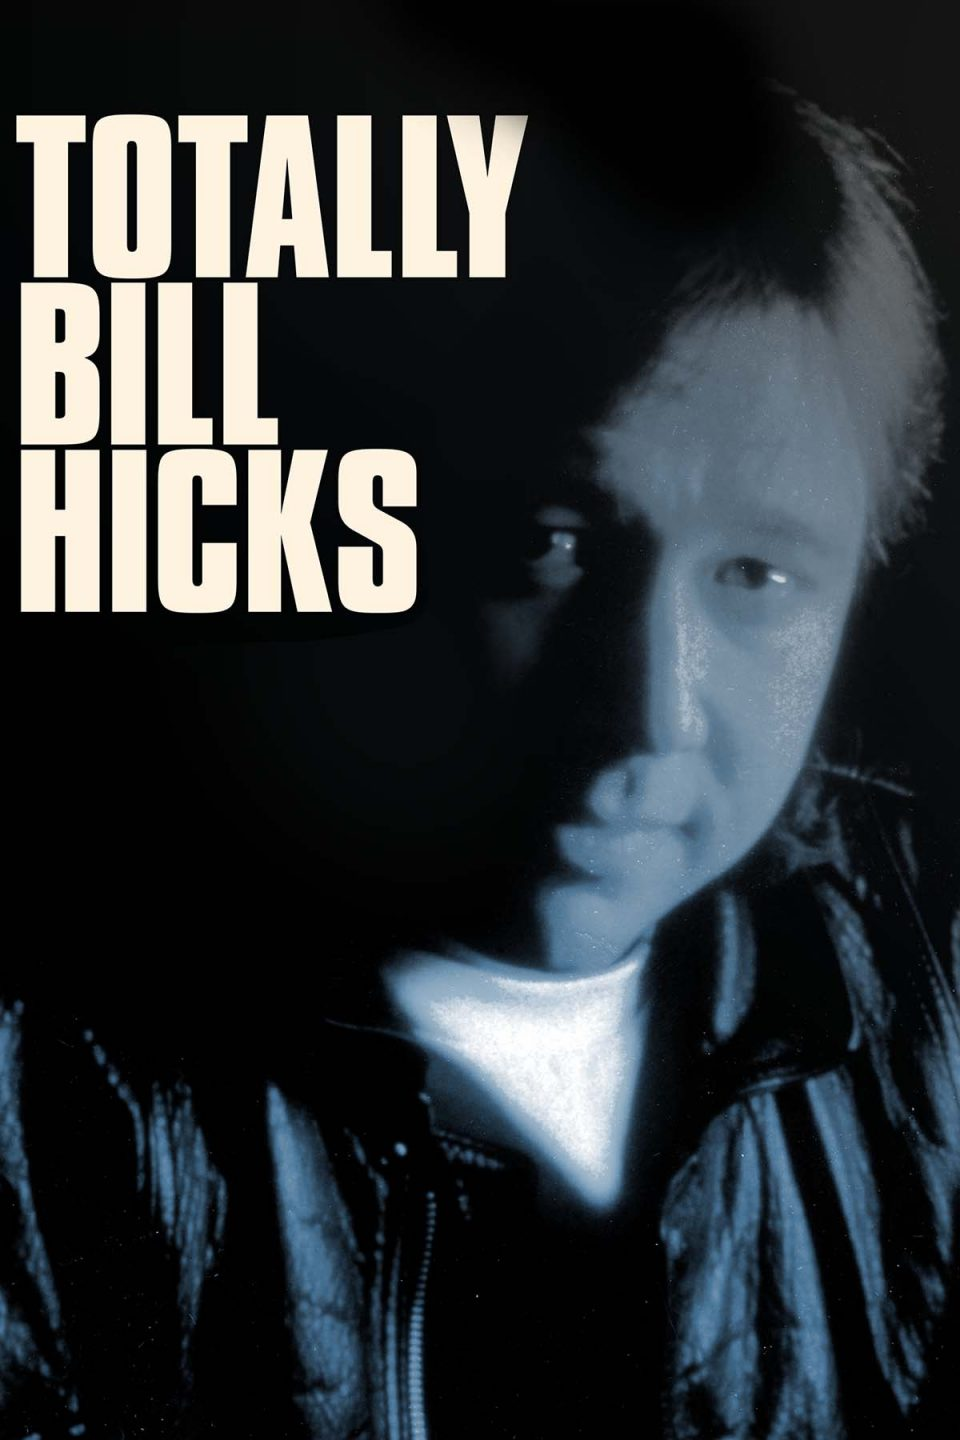 BillHicks Totally Premiere 1400